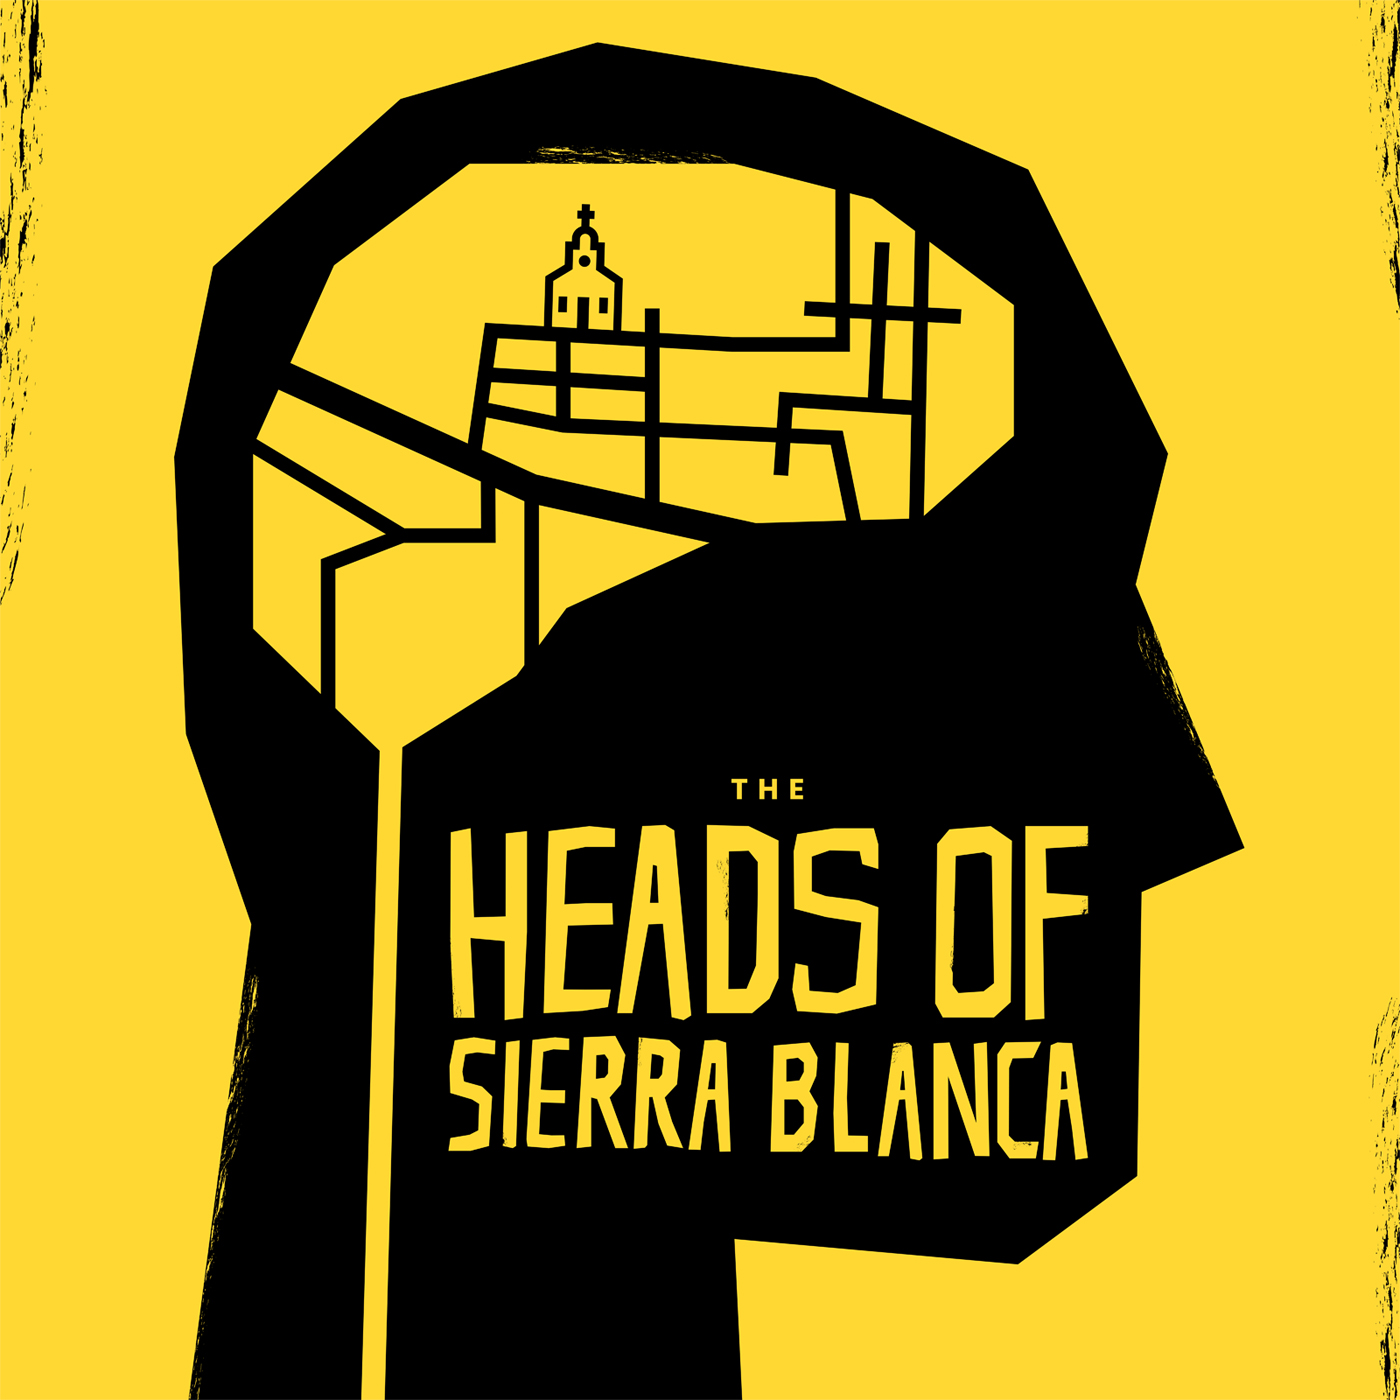 Heads of Sierra Blanca Trailer